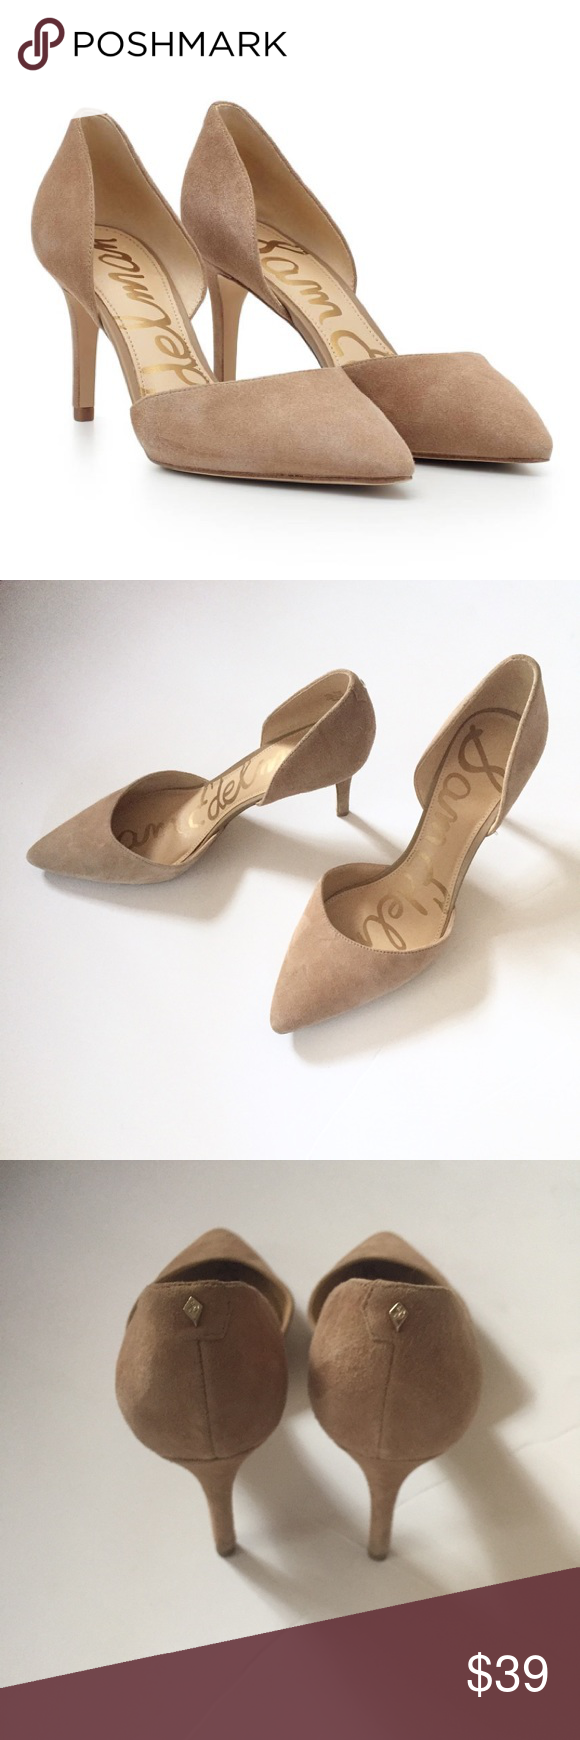 d4e8559b2 Sam Edelman Telsa D Orsay Pointed Toe Stilettos Worn a couple of times.  Color  Oatmeal Suede. D Orsay Pointed Toe Stiletto Special Details   D Orsay